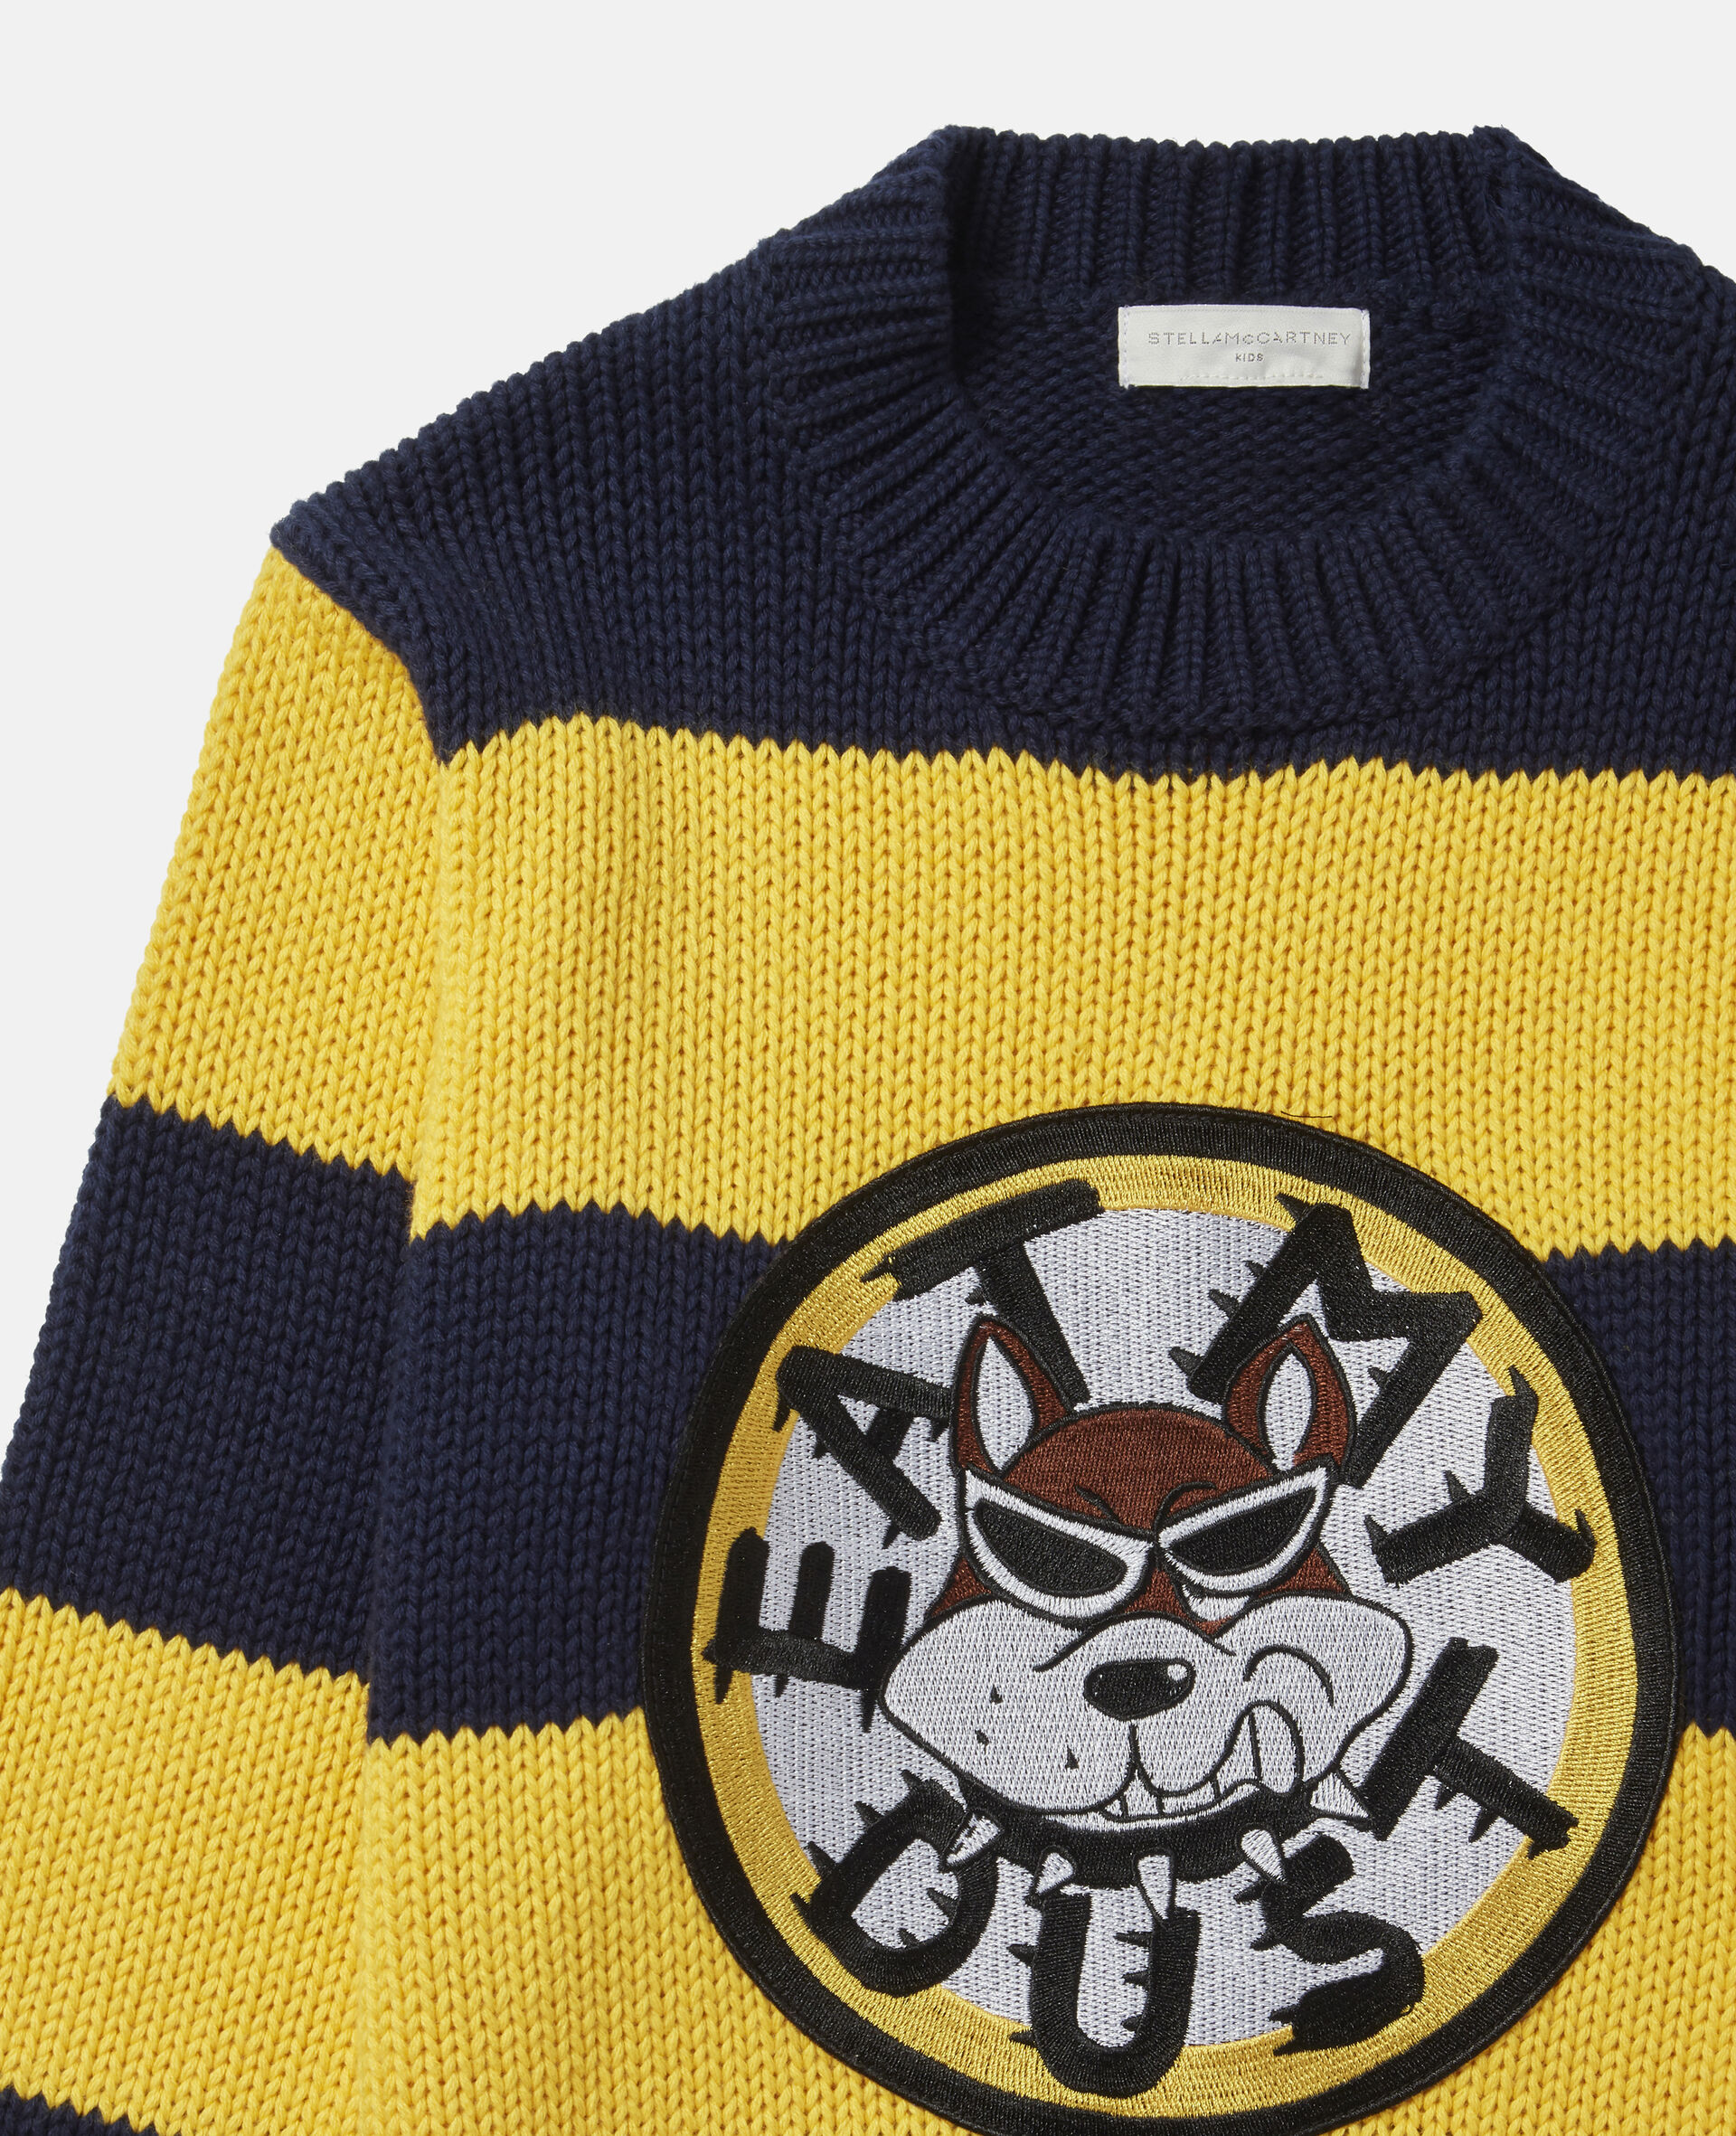 'Eat My Dust' Oversized Knit Jumper-Multicolour-large image number 1